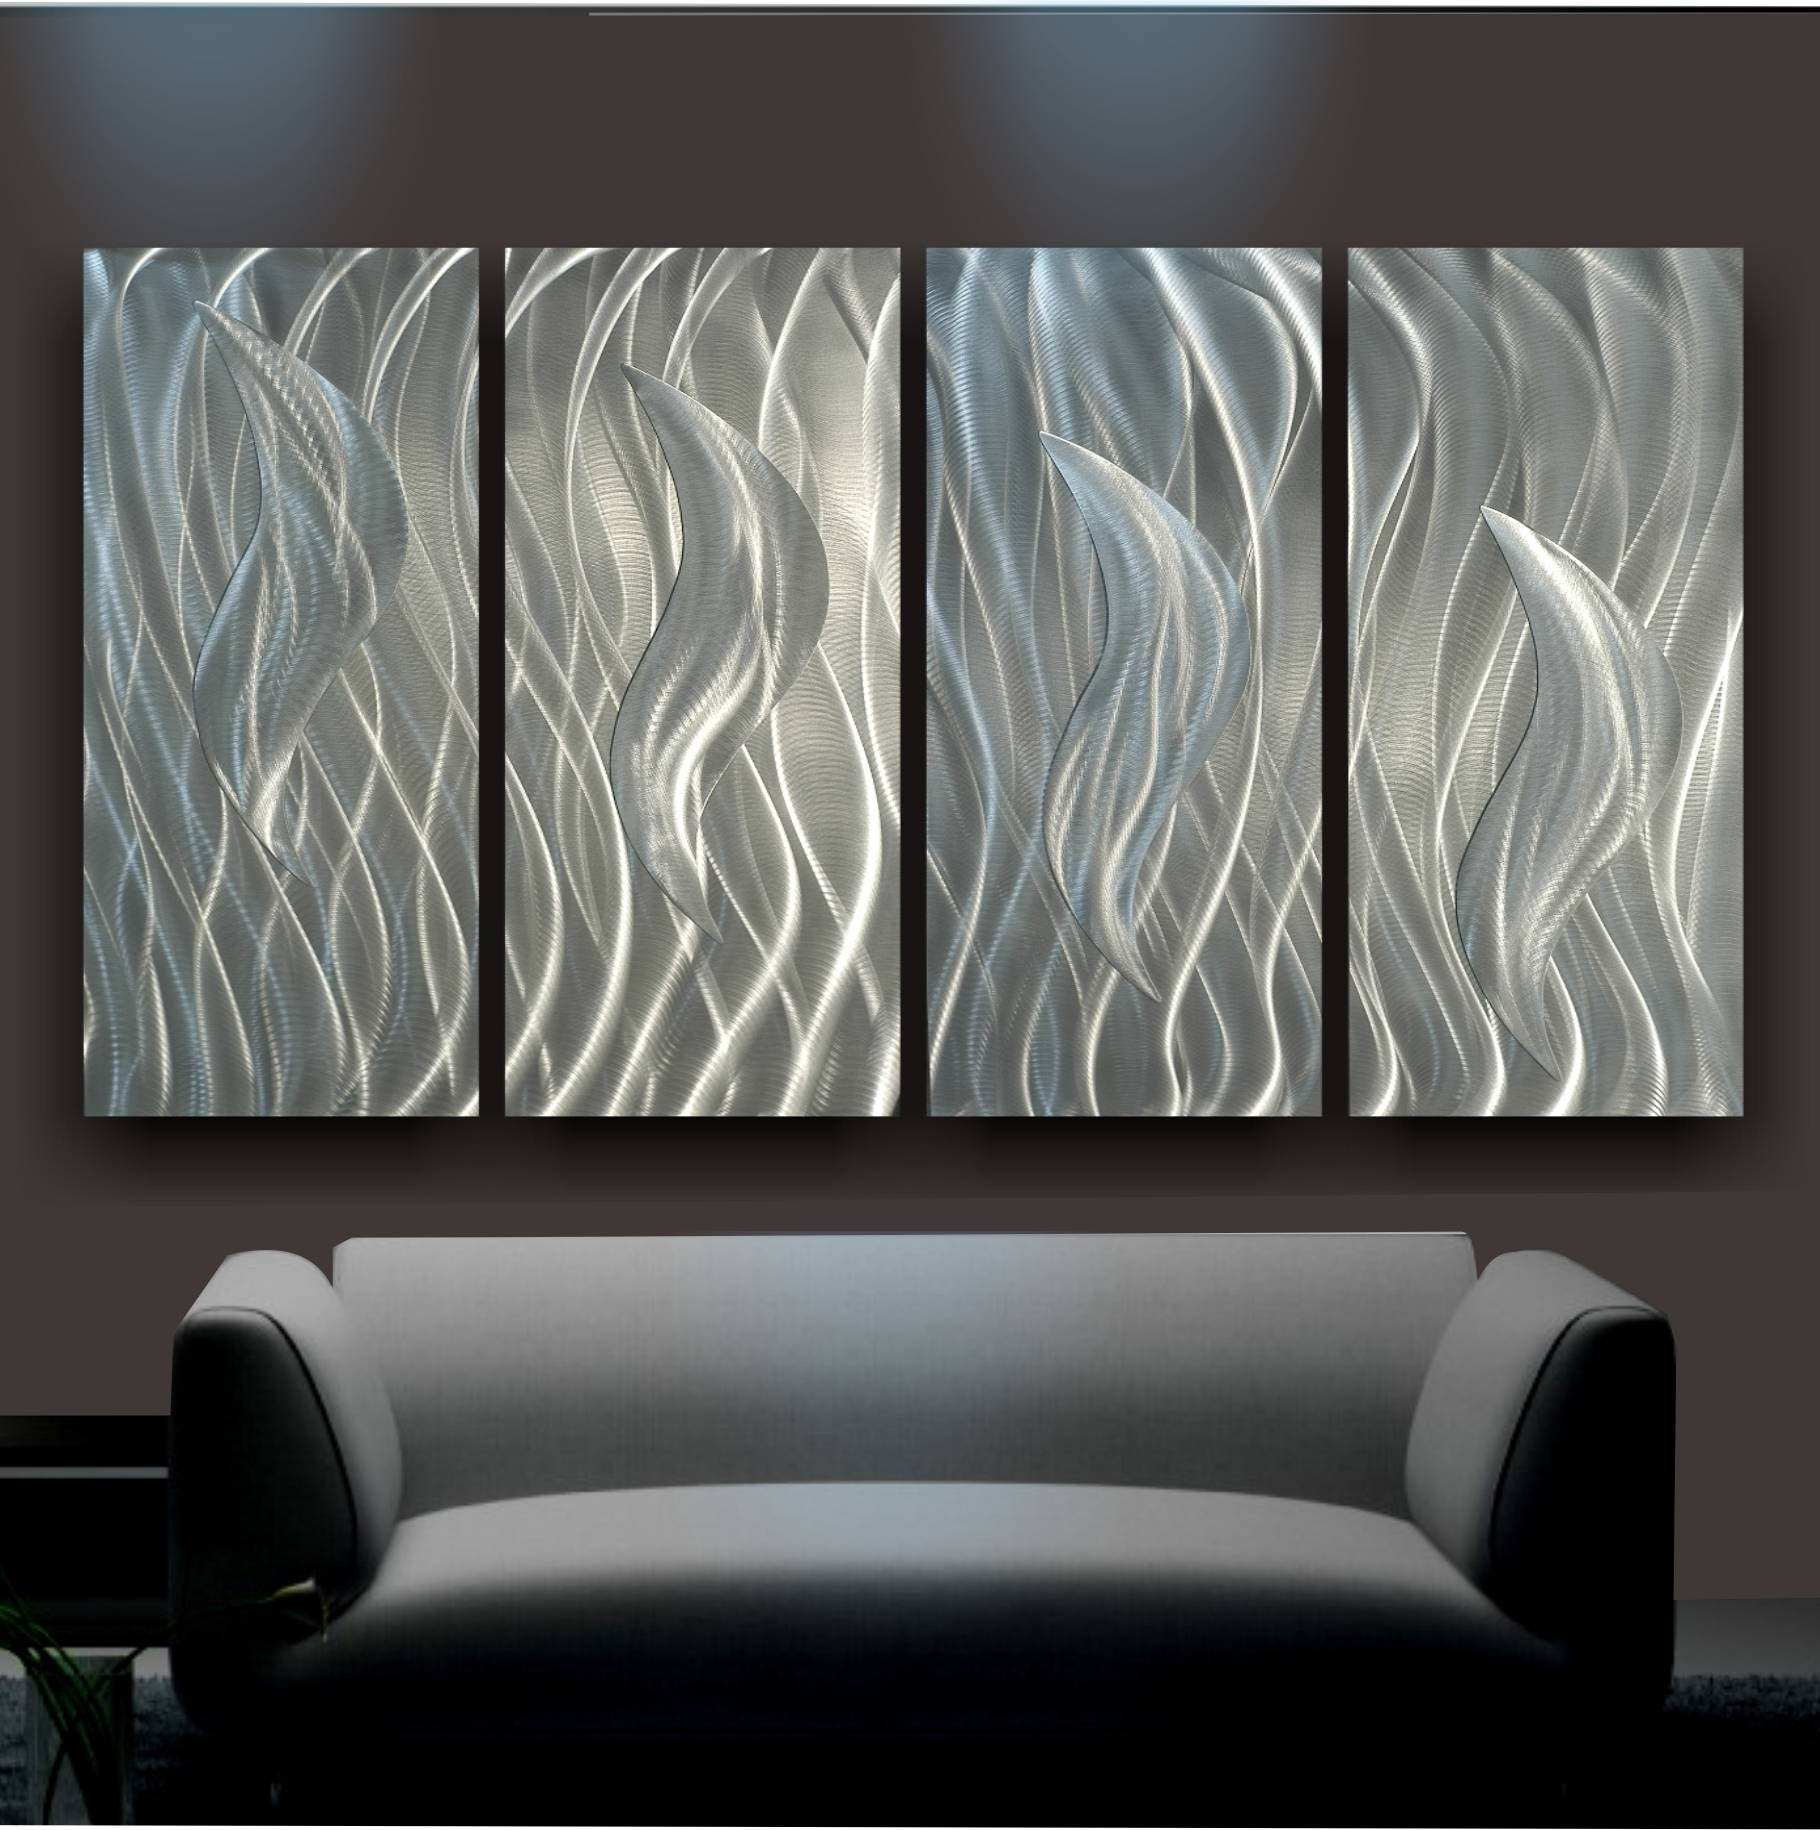 Metal Wall Designs Cheap Metal Wall Designs | Home Design Ideas With Regard To Most Popular Inexpensive Metal Wall Art (View 4 of 20)